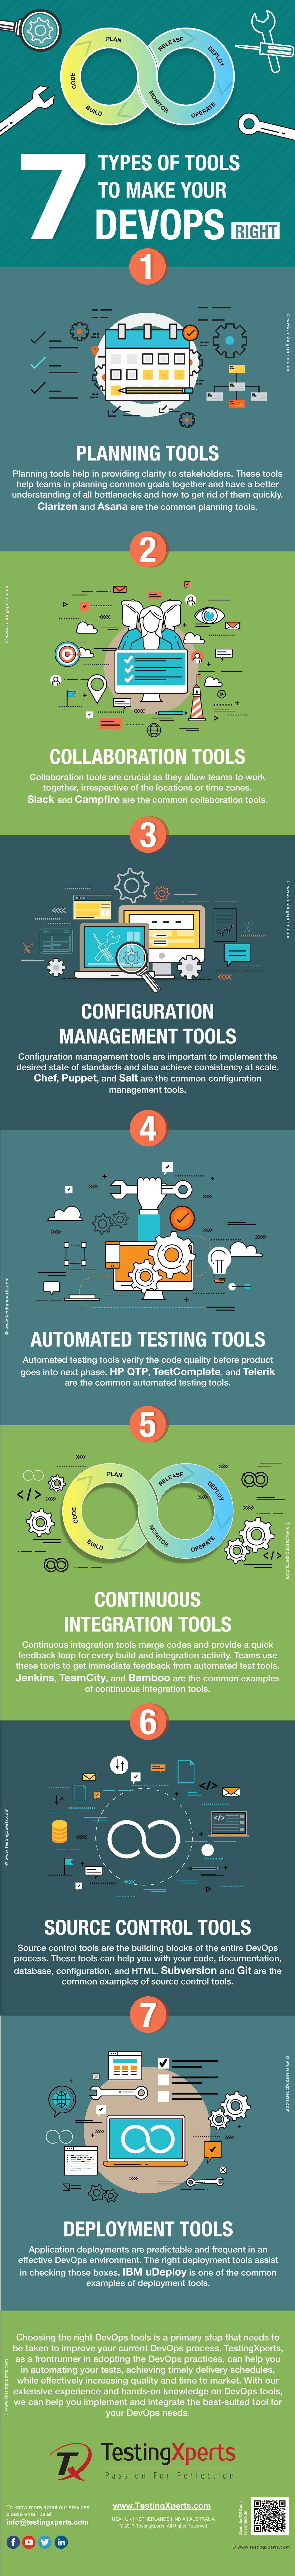 Infographic - Best DevOps Tools for Agile environment